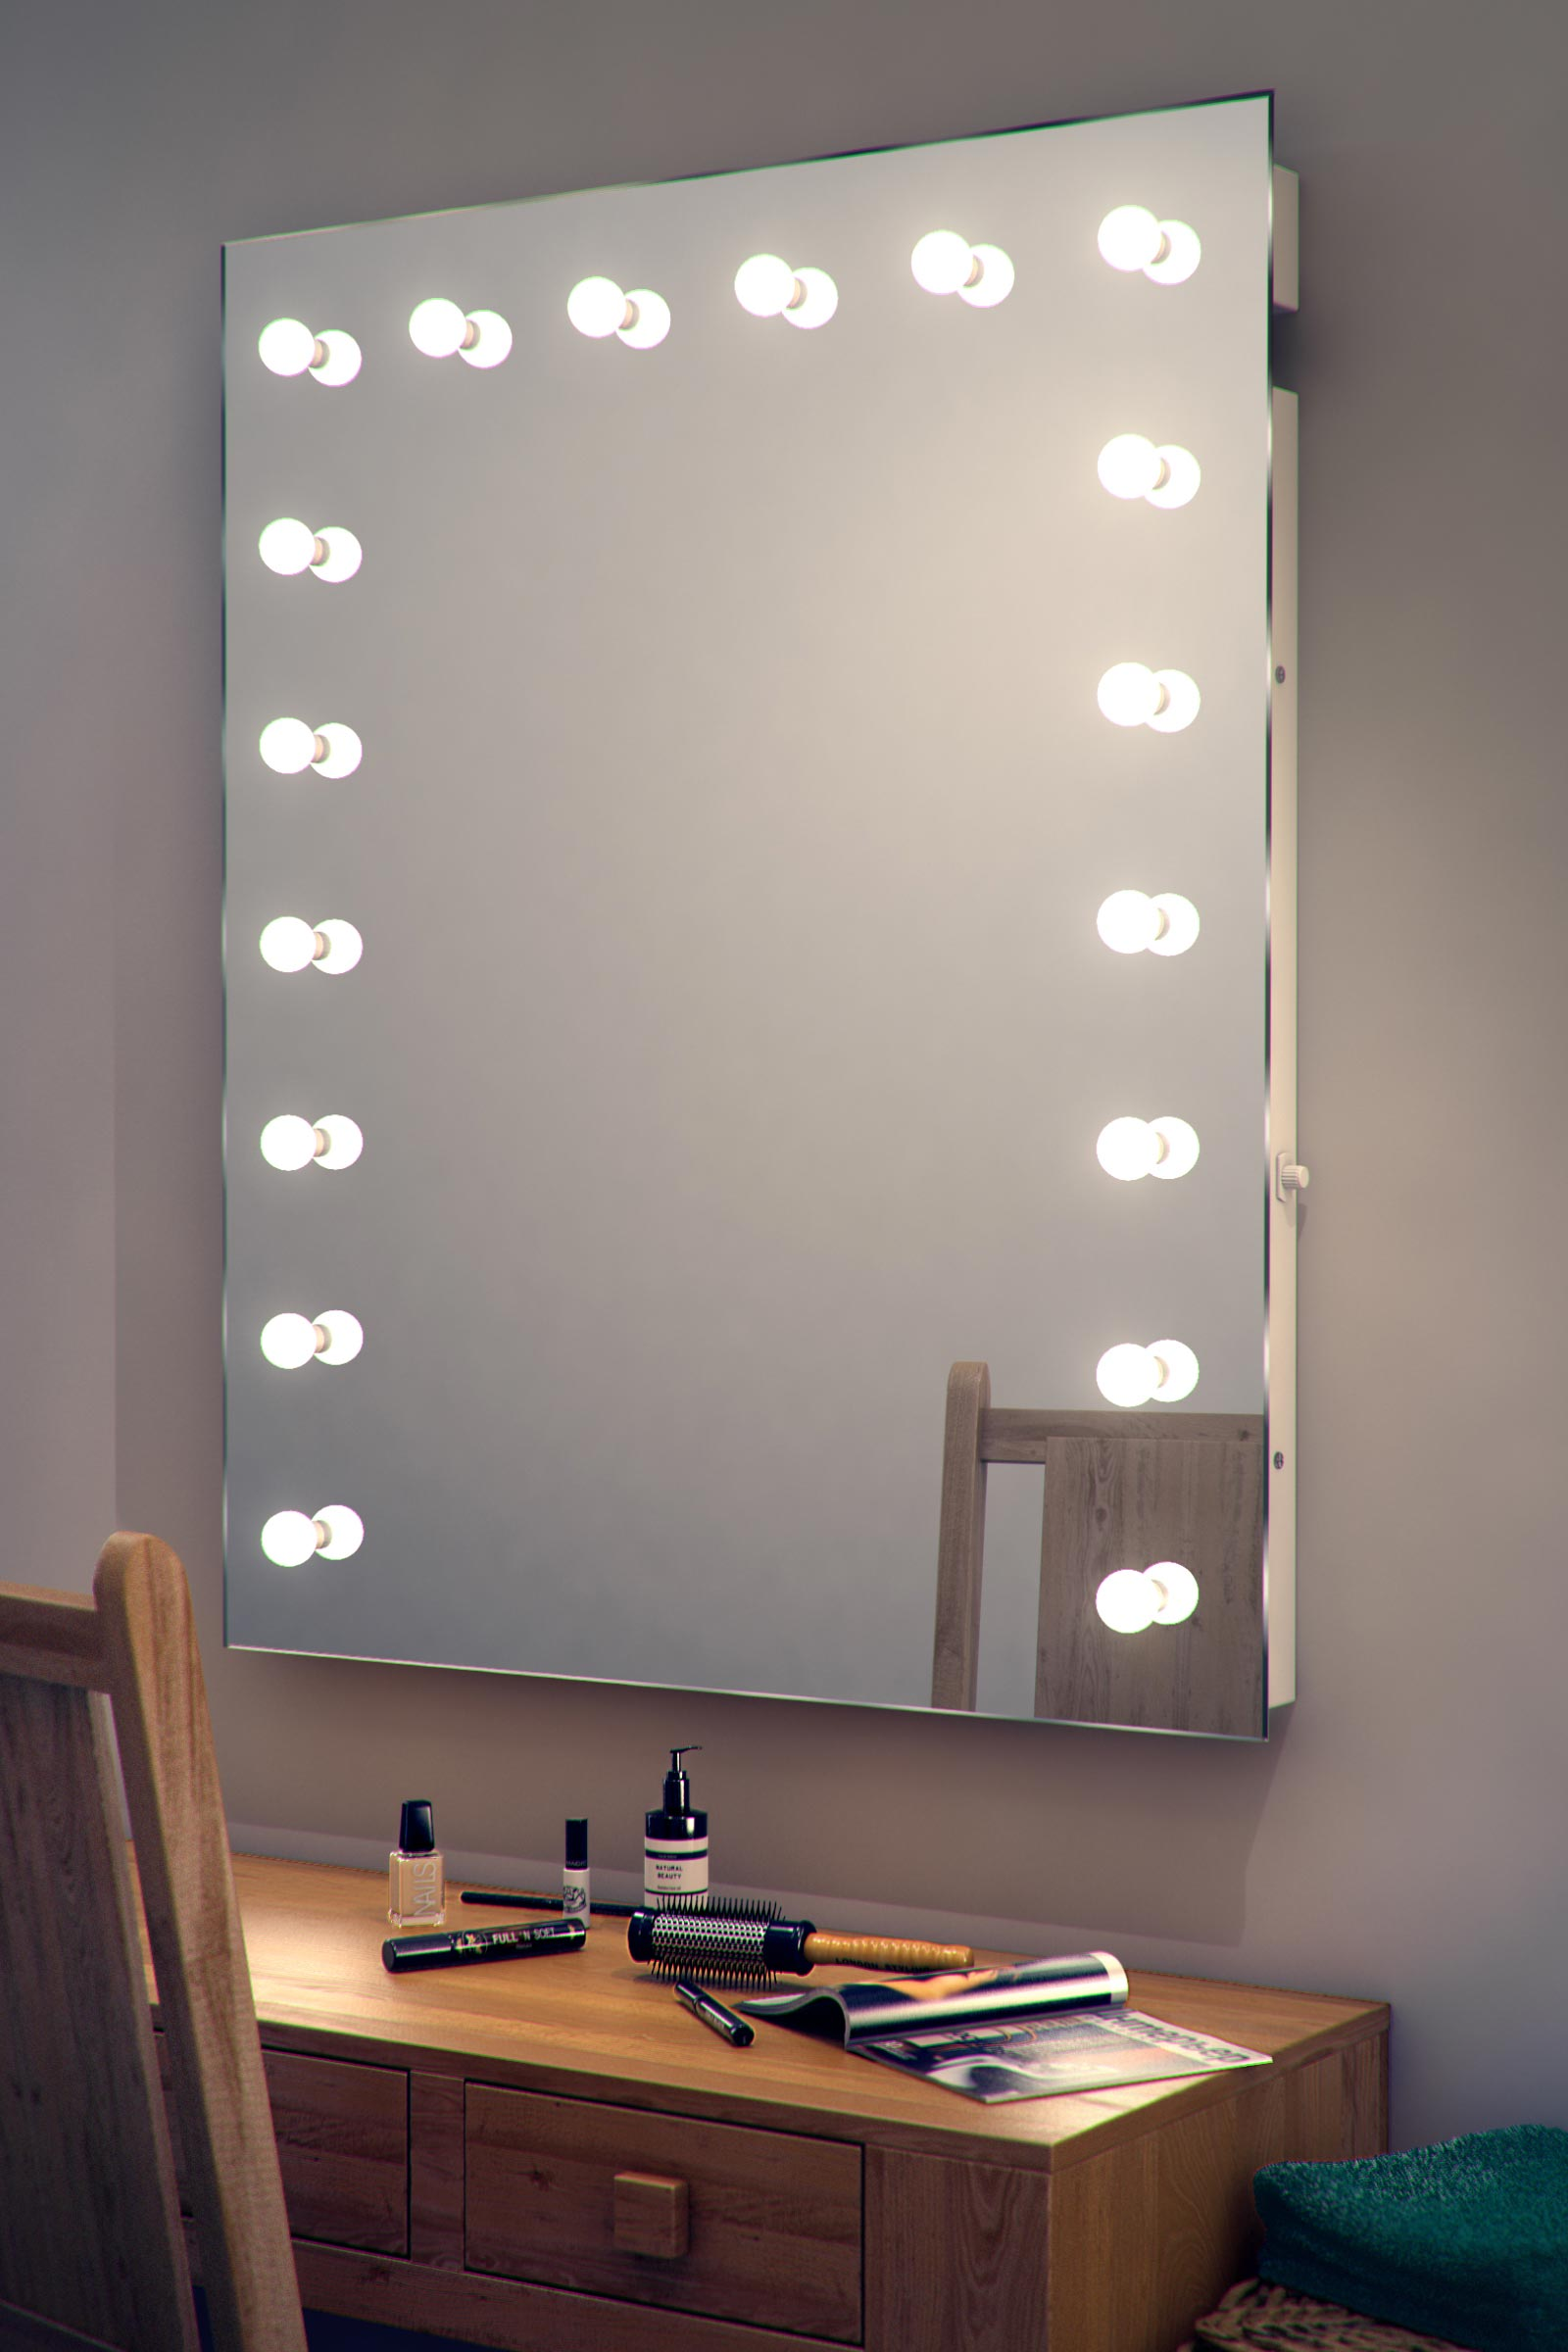 Vanity Mirror With Lights Dressing Room : Hollywood Makeup Theatre Dressing Room Mirror K92 eBay